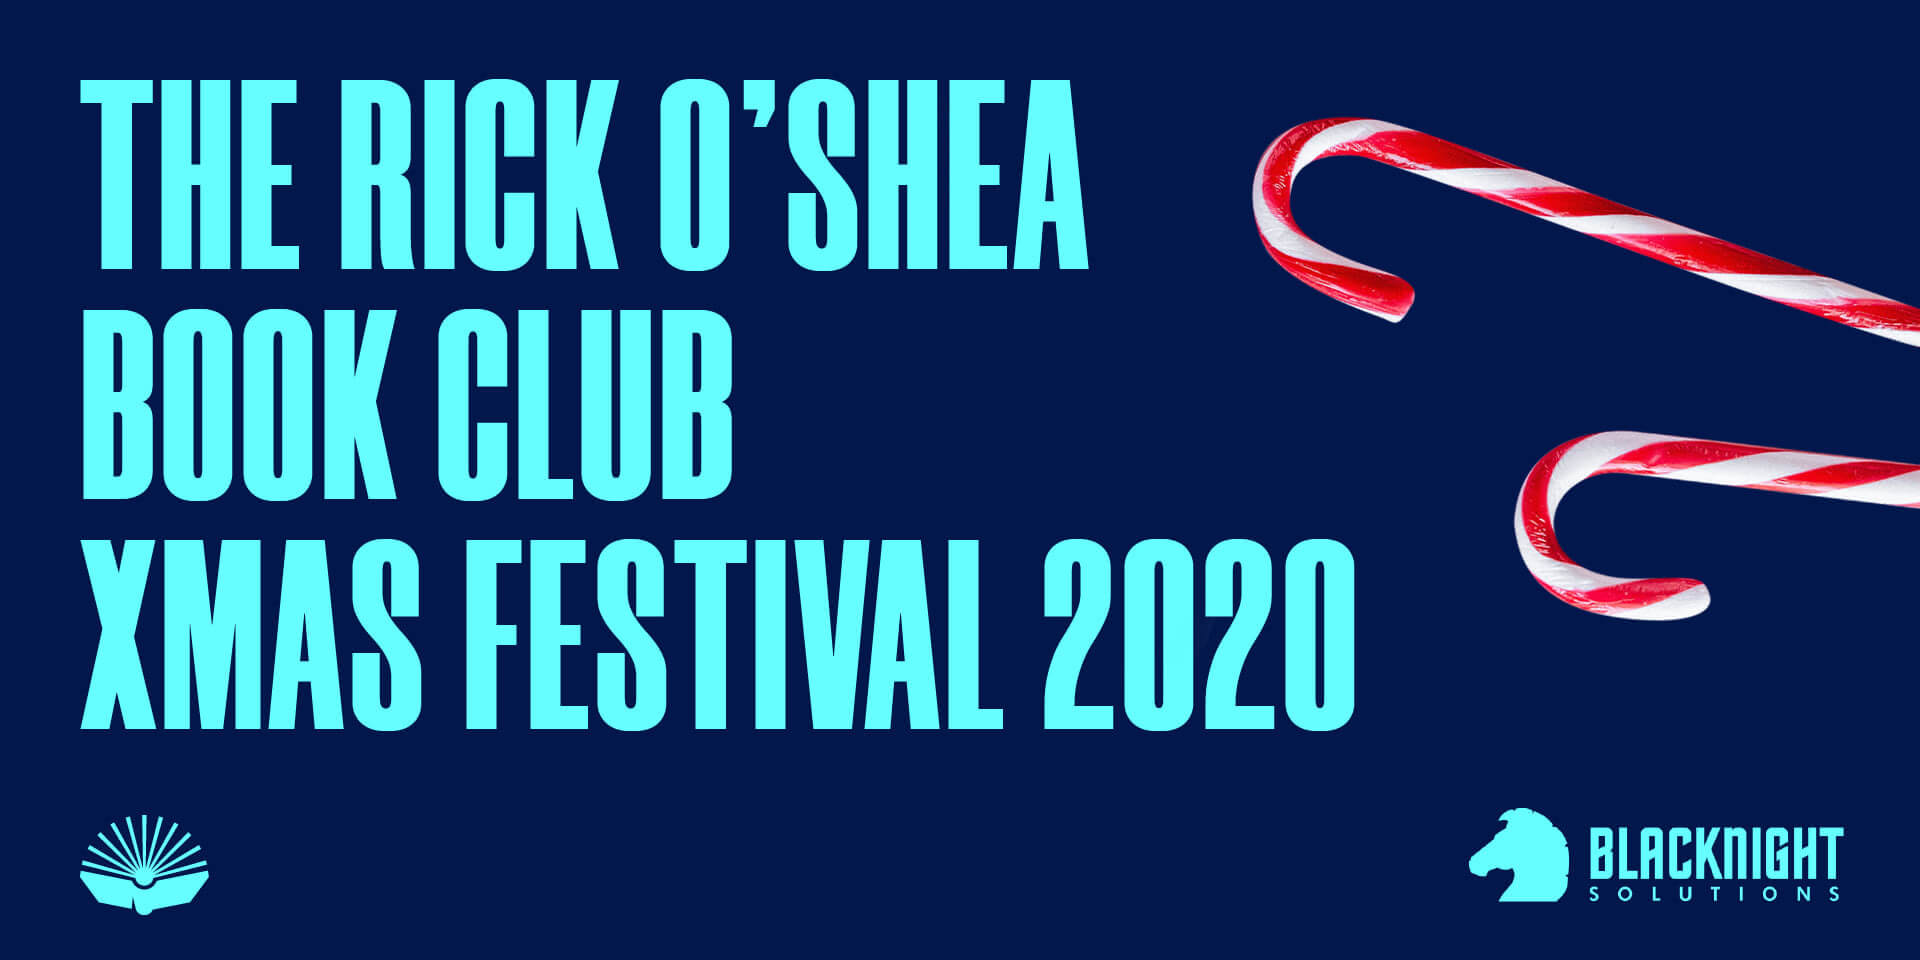 Blacknight has sponsored the inaugural Rick O'Shea Book Club Christmas Festival 2020.